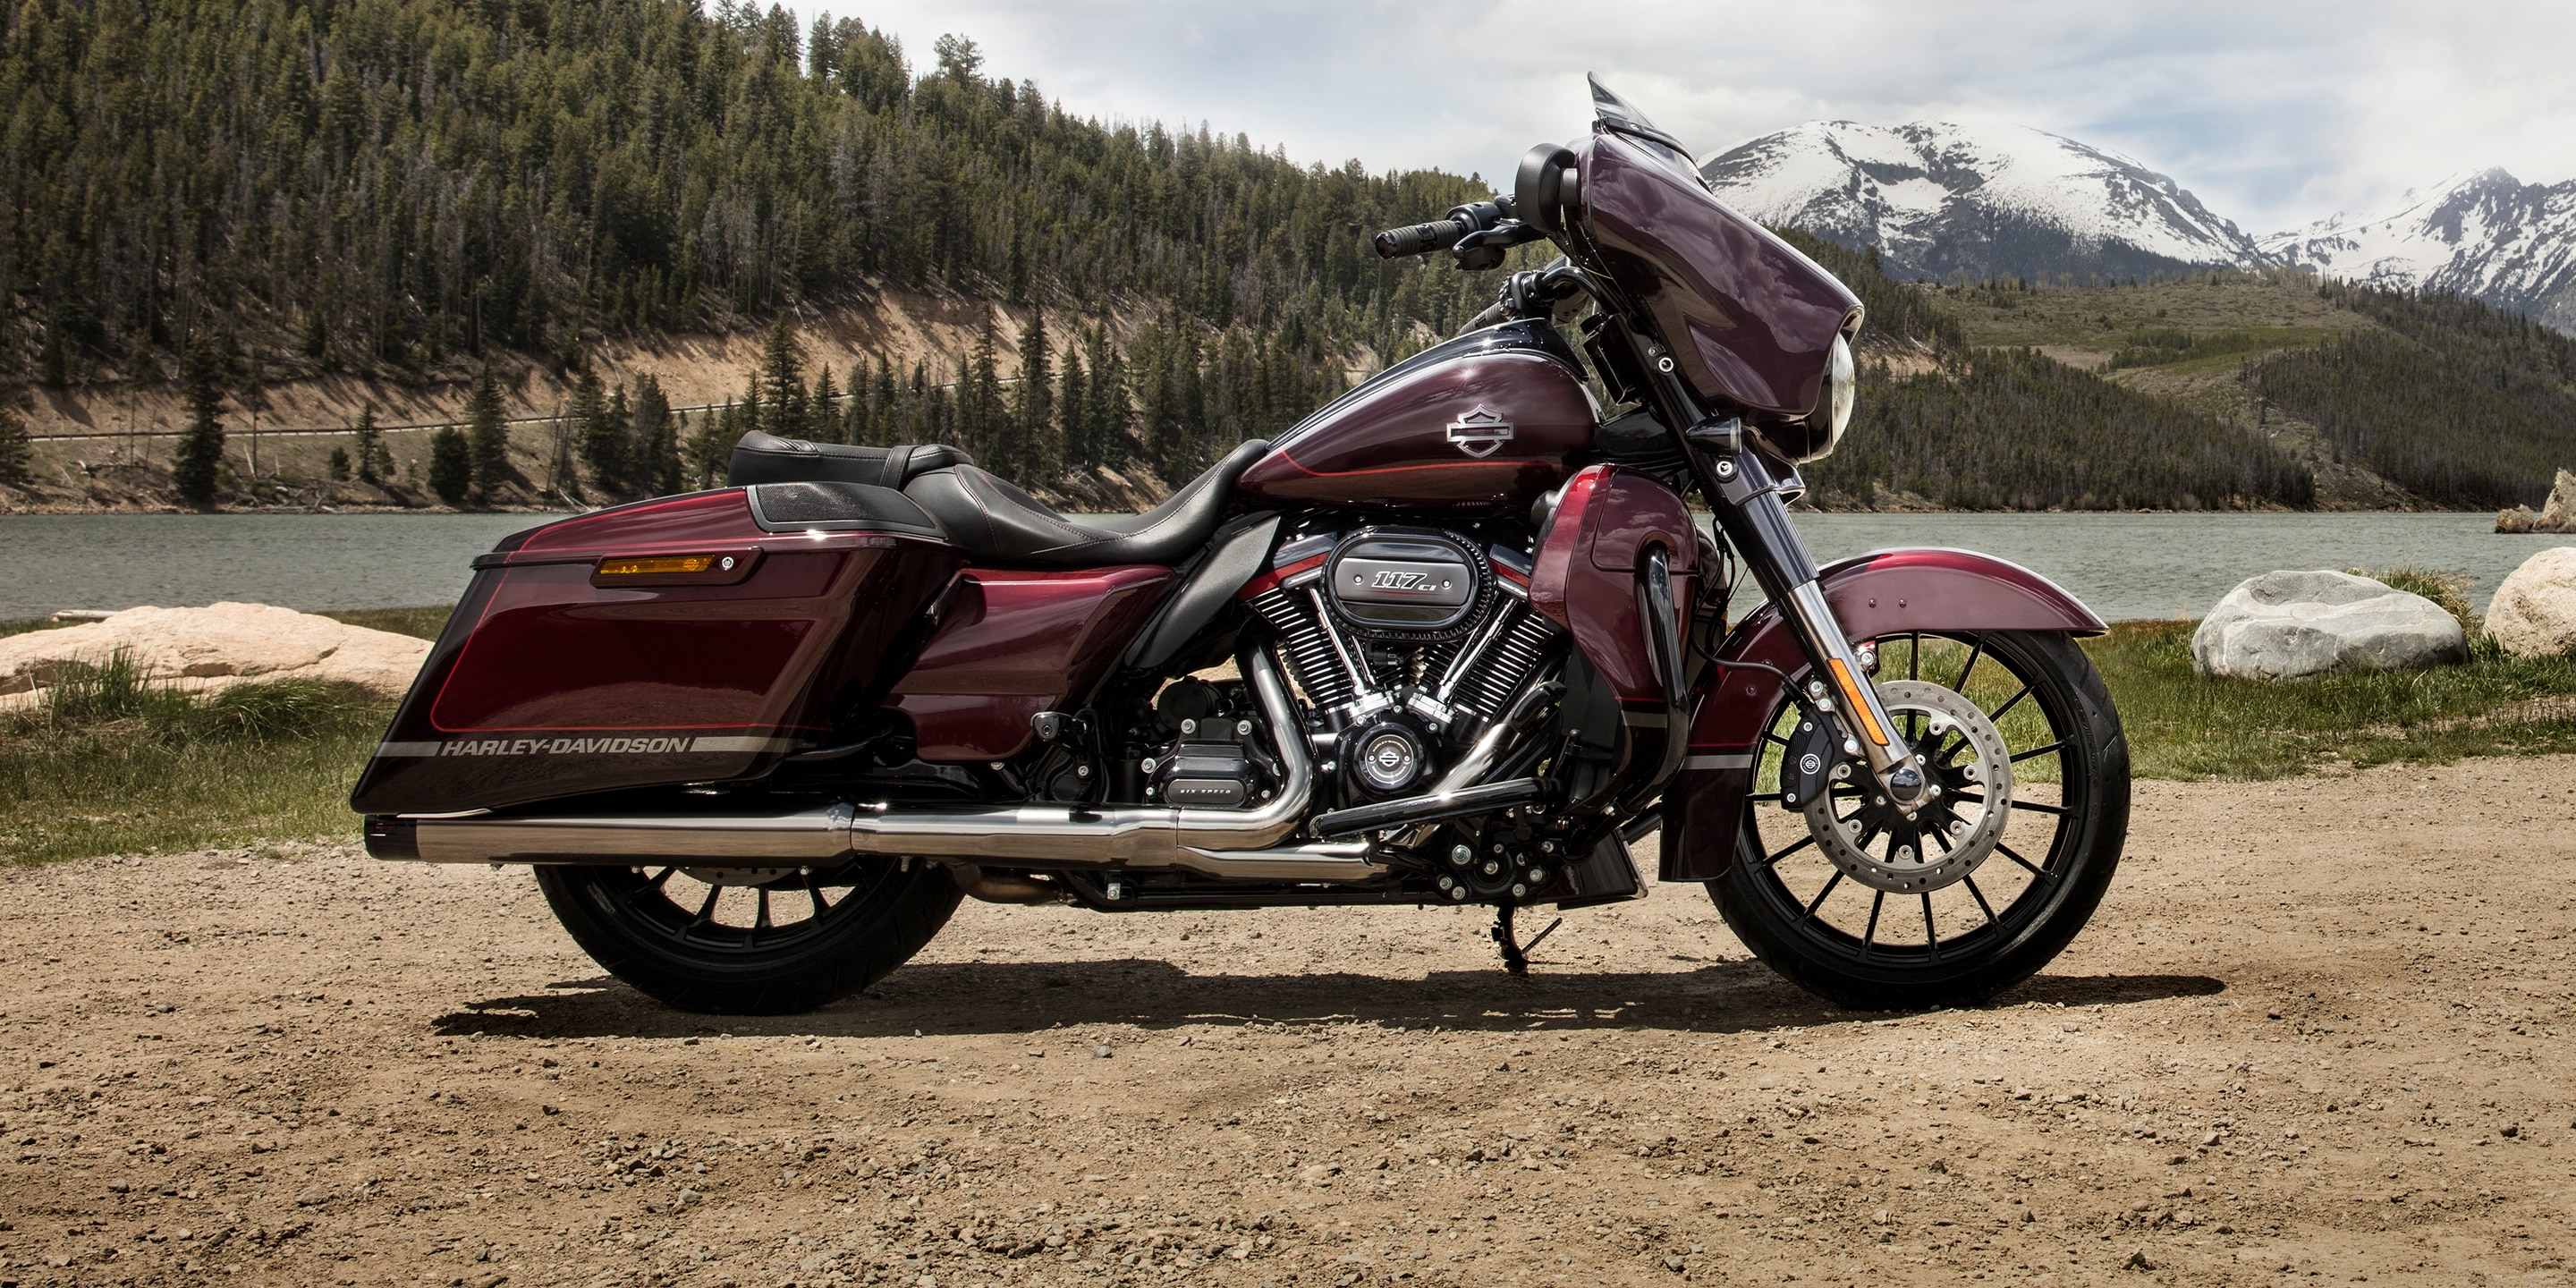 2019 CVO Street Glide motorcycle parked by mountain scenery